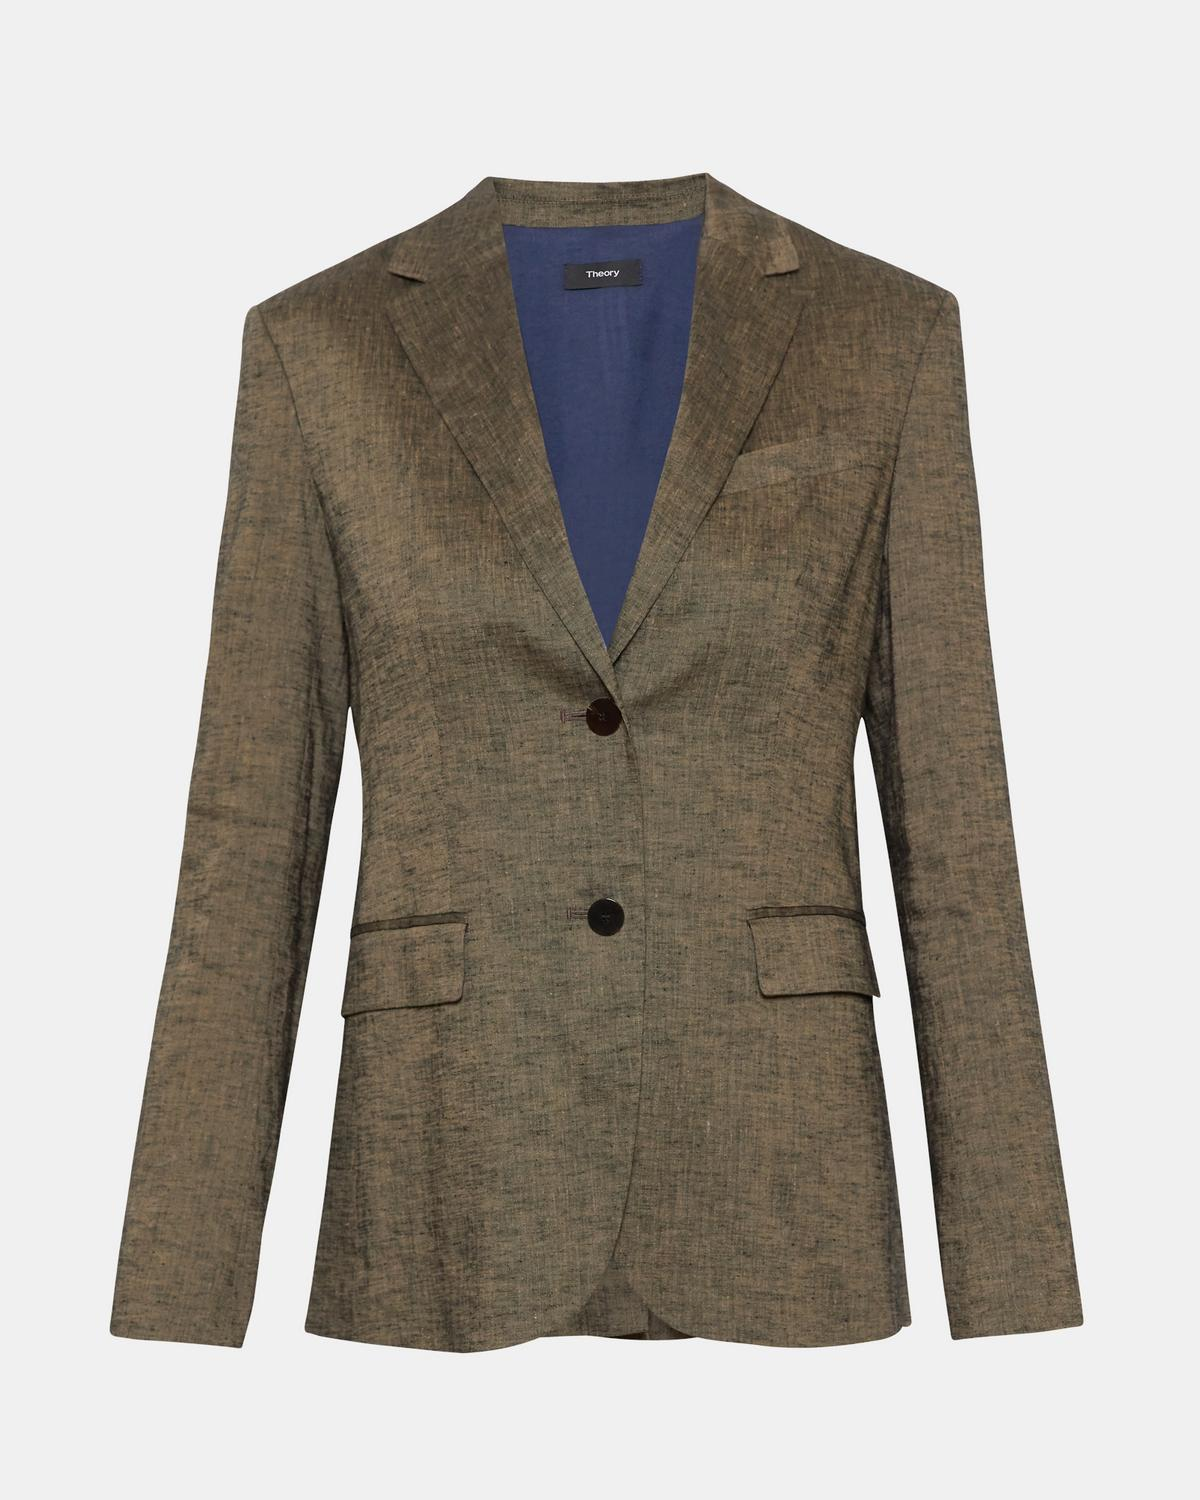 Classic Blazer in Textured Linen